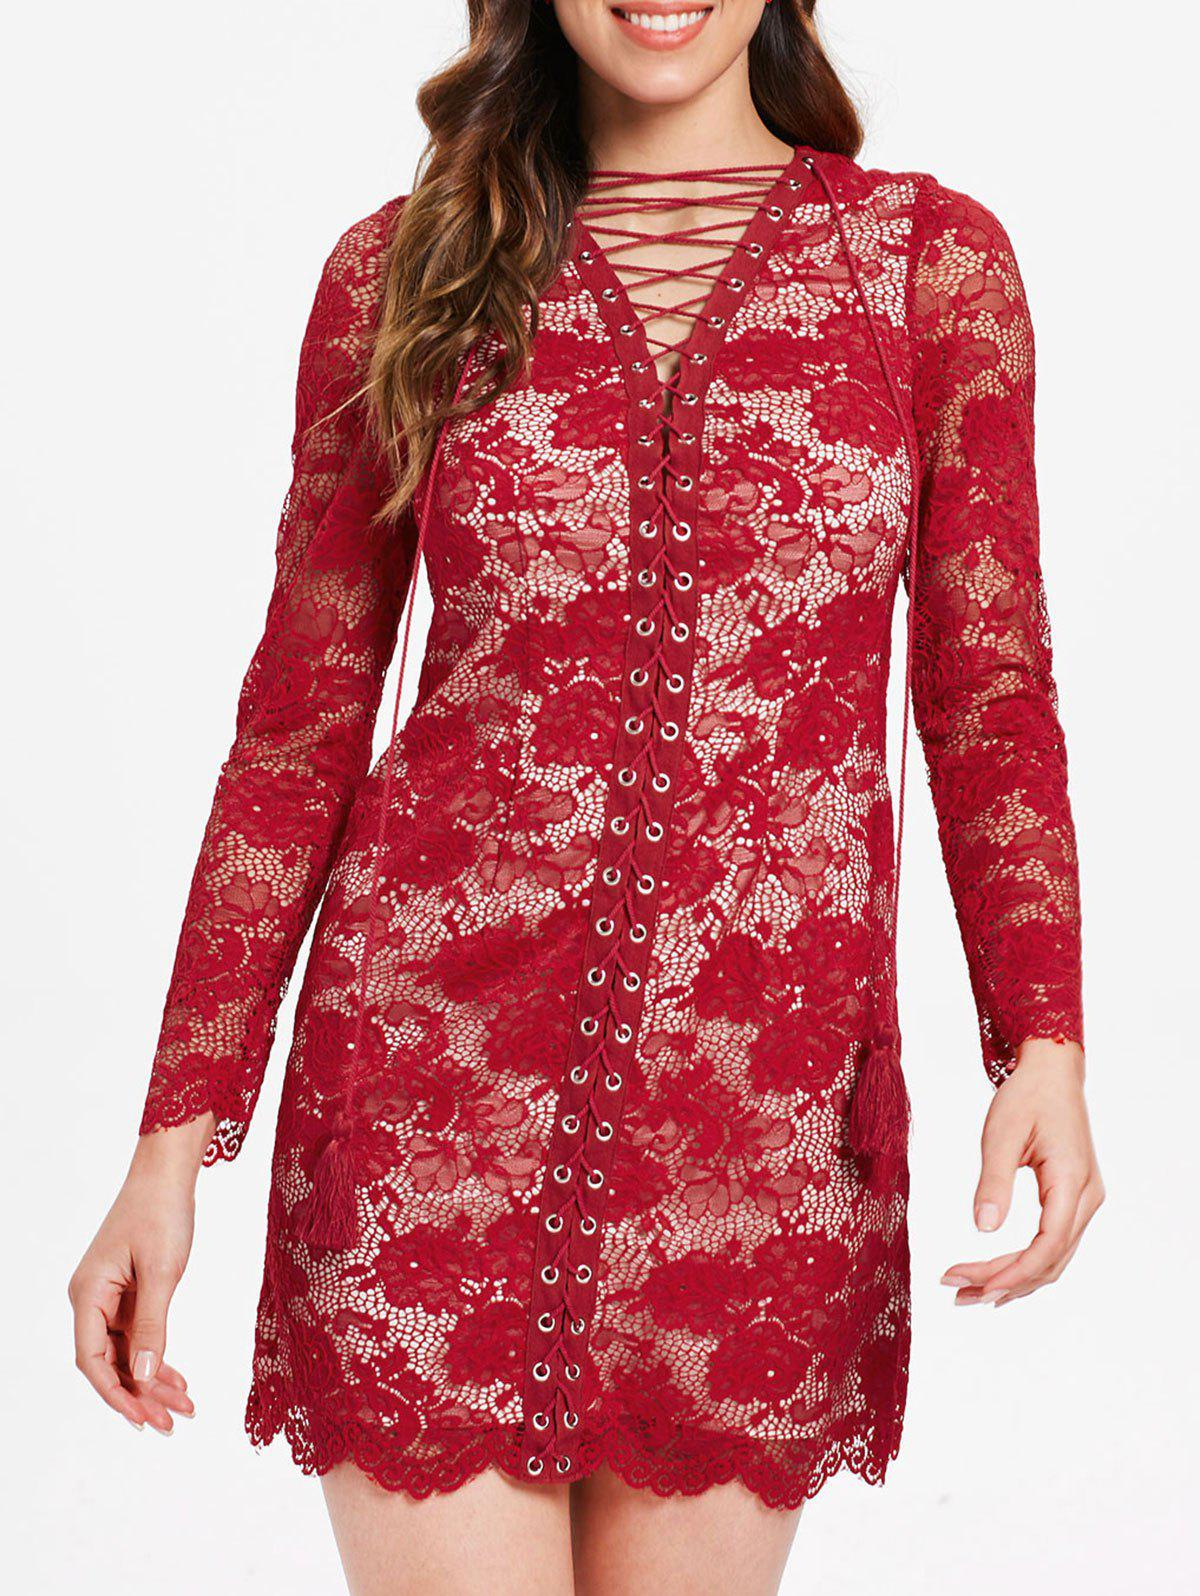 Shops Full Sleeve Criss Cross Lace Bodycon Dress